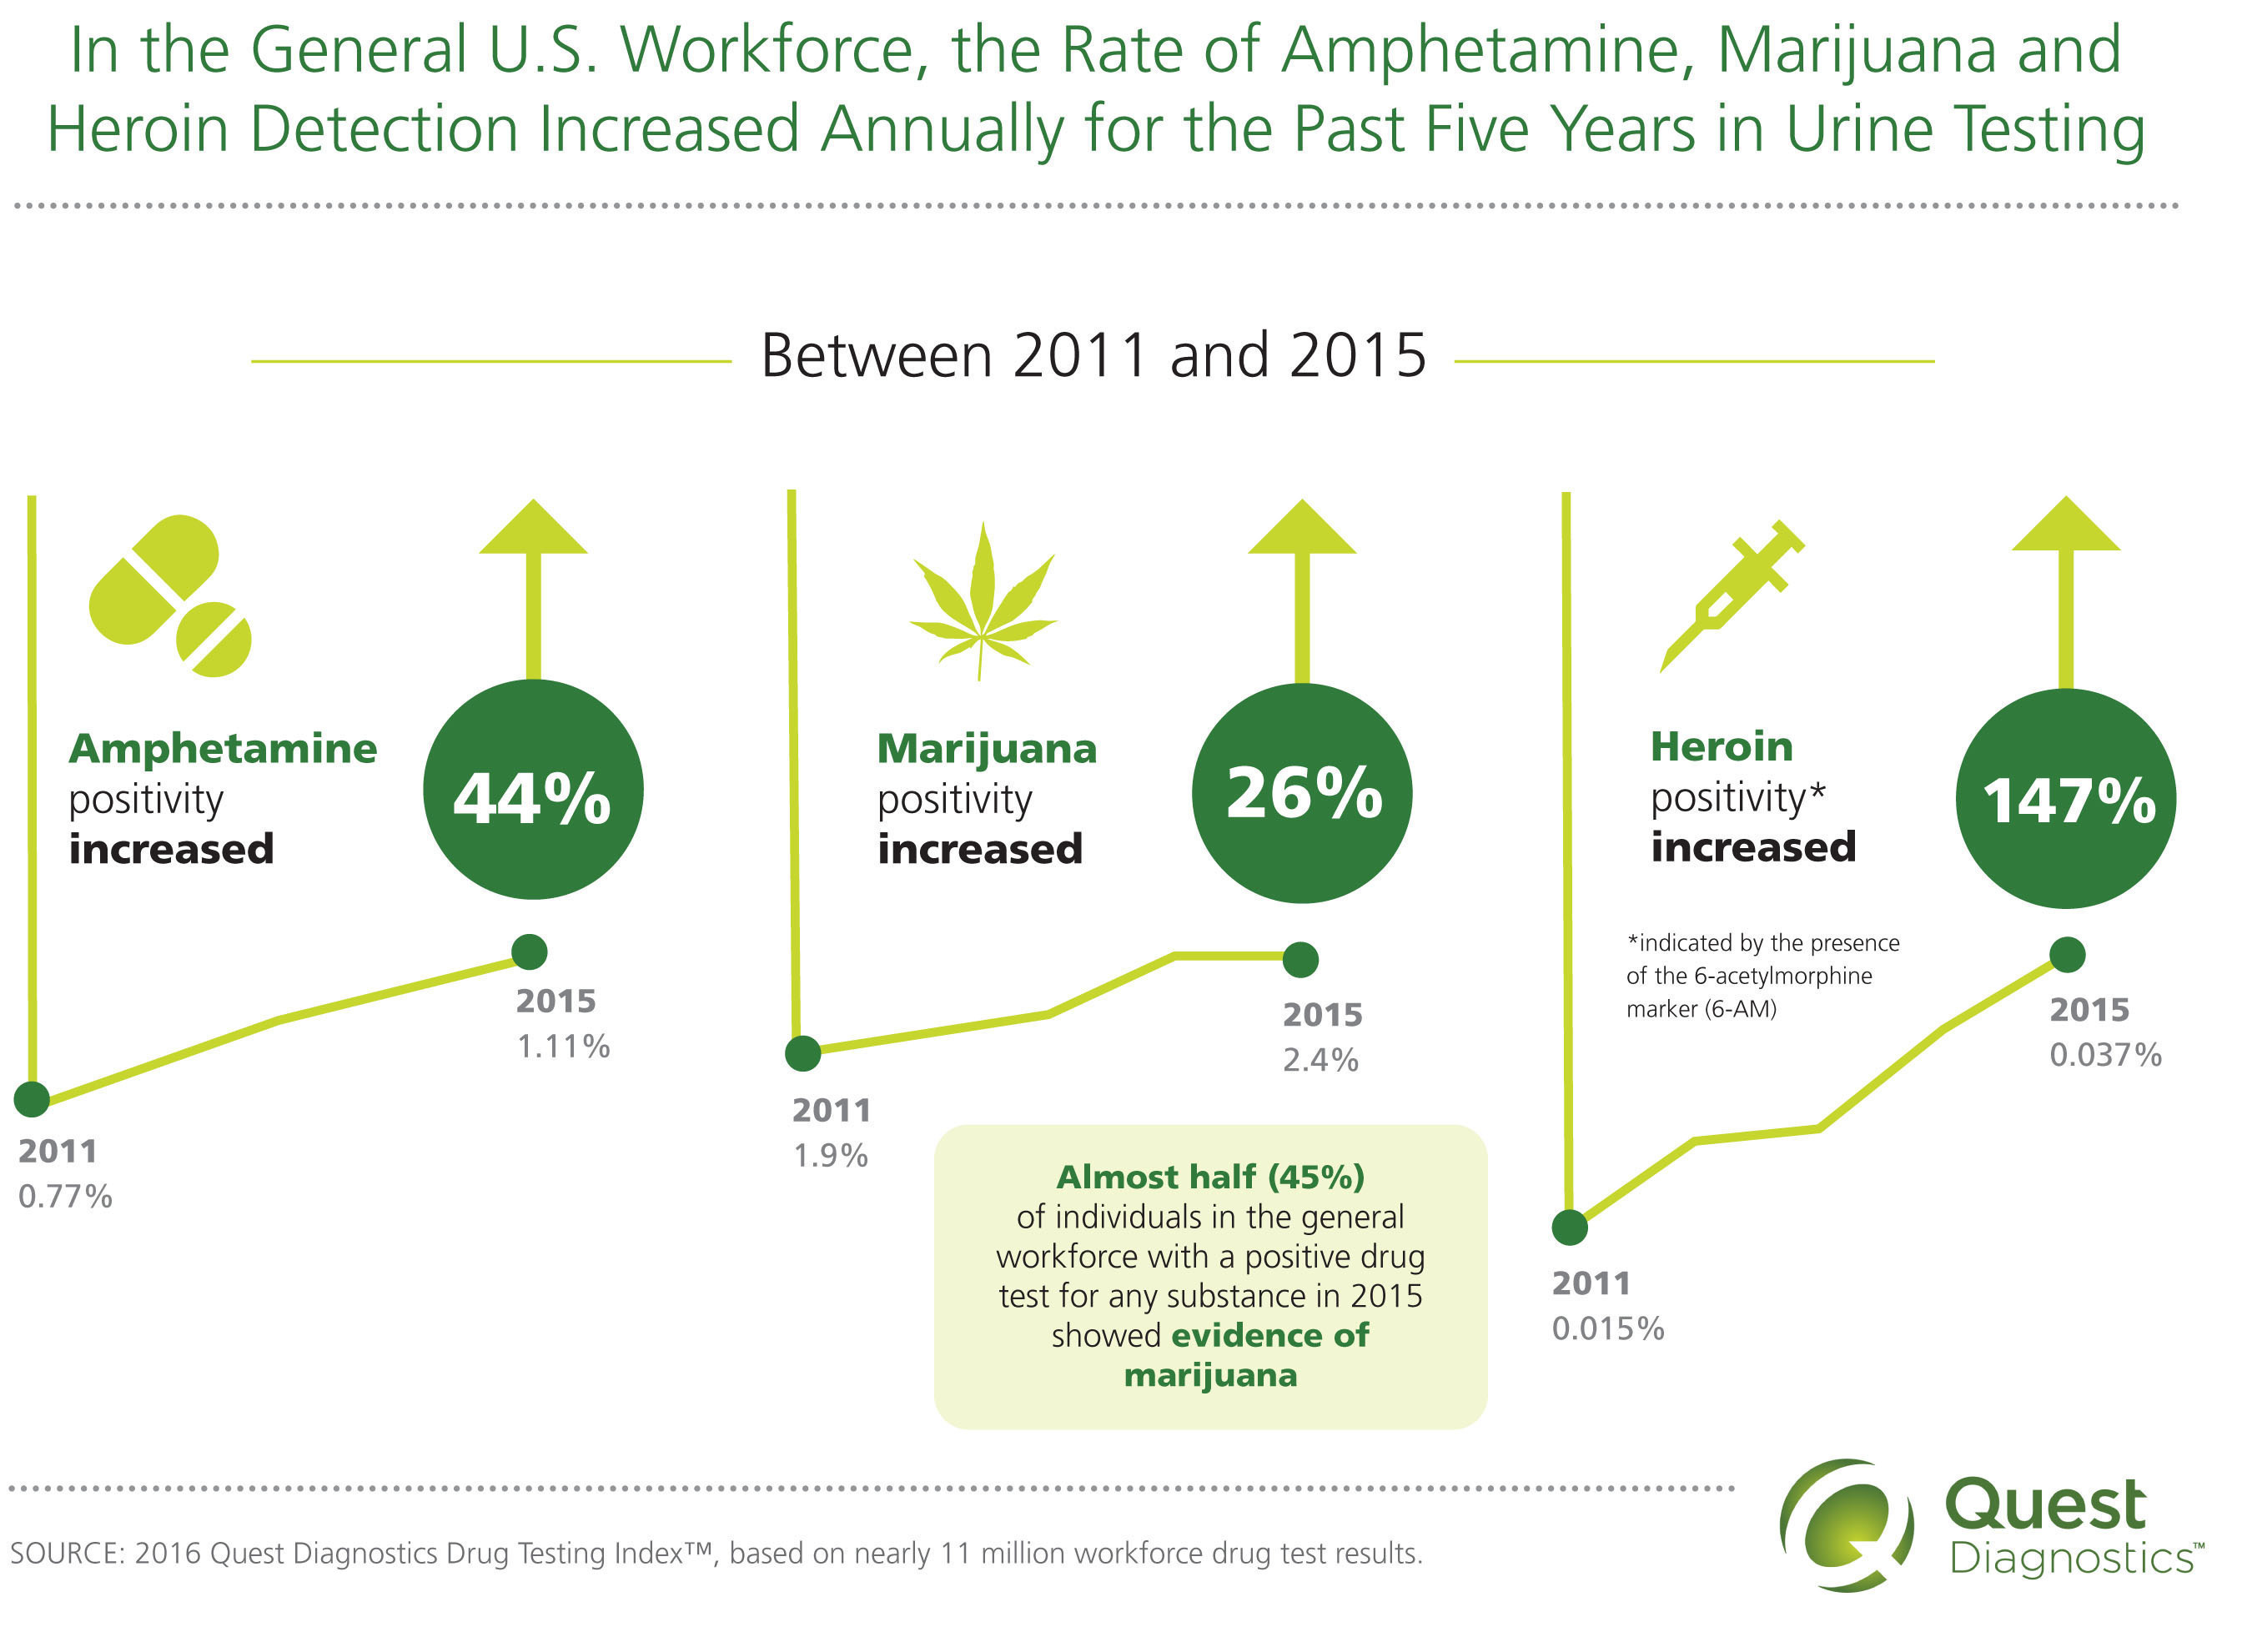 In the General U.S. Workforce, the Rate of Amphetamine, Marijuana and Heroin Detection Increased Annually for the Past Five Years in Urine Testing